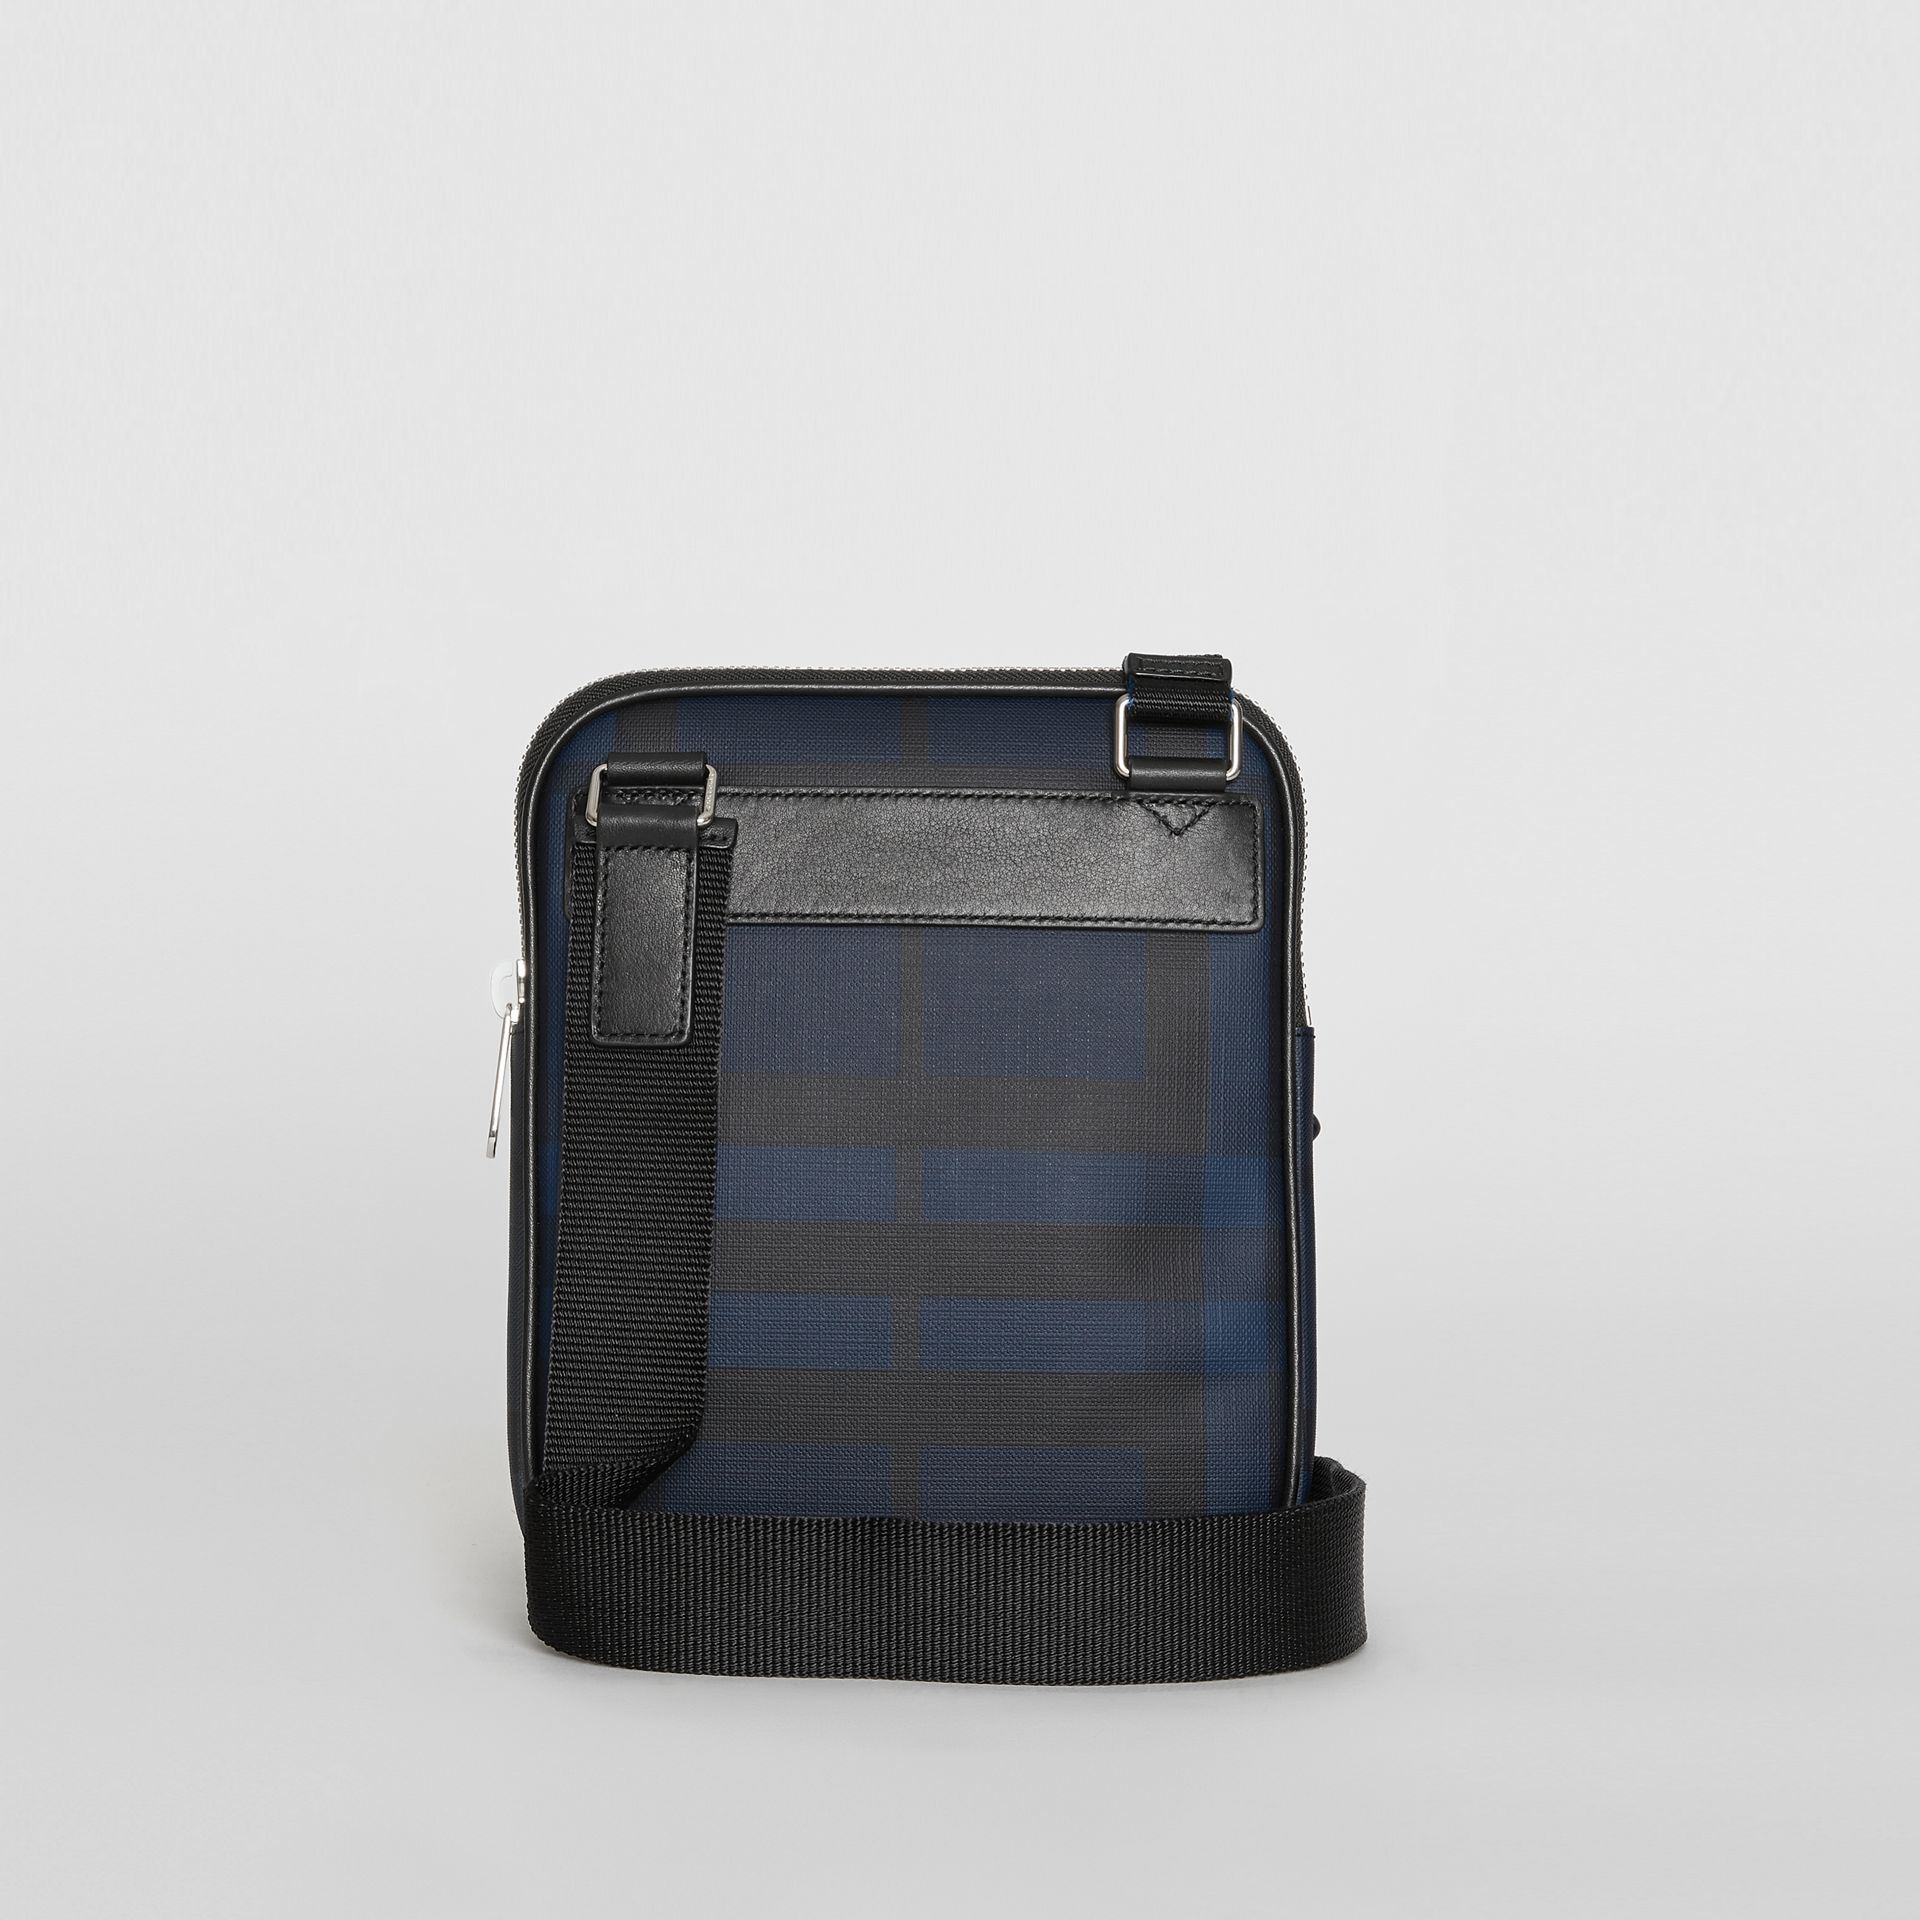 Slim London Check Crossbody Bag in Navy/black - Men | Burberry - gallery image 7